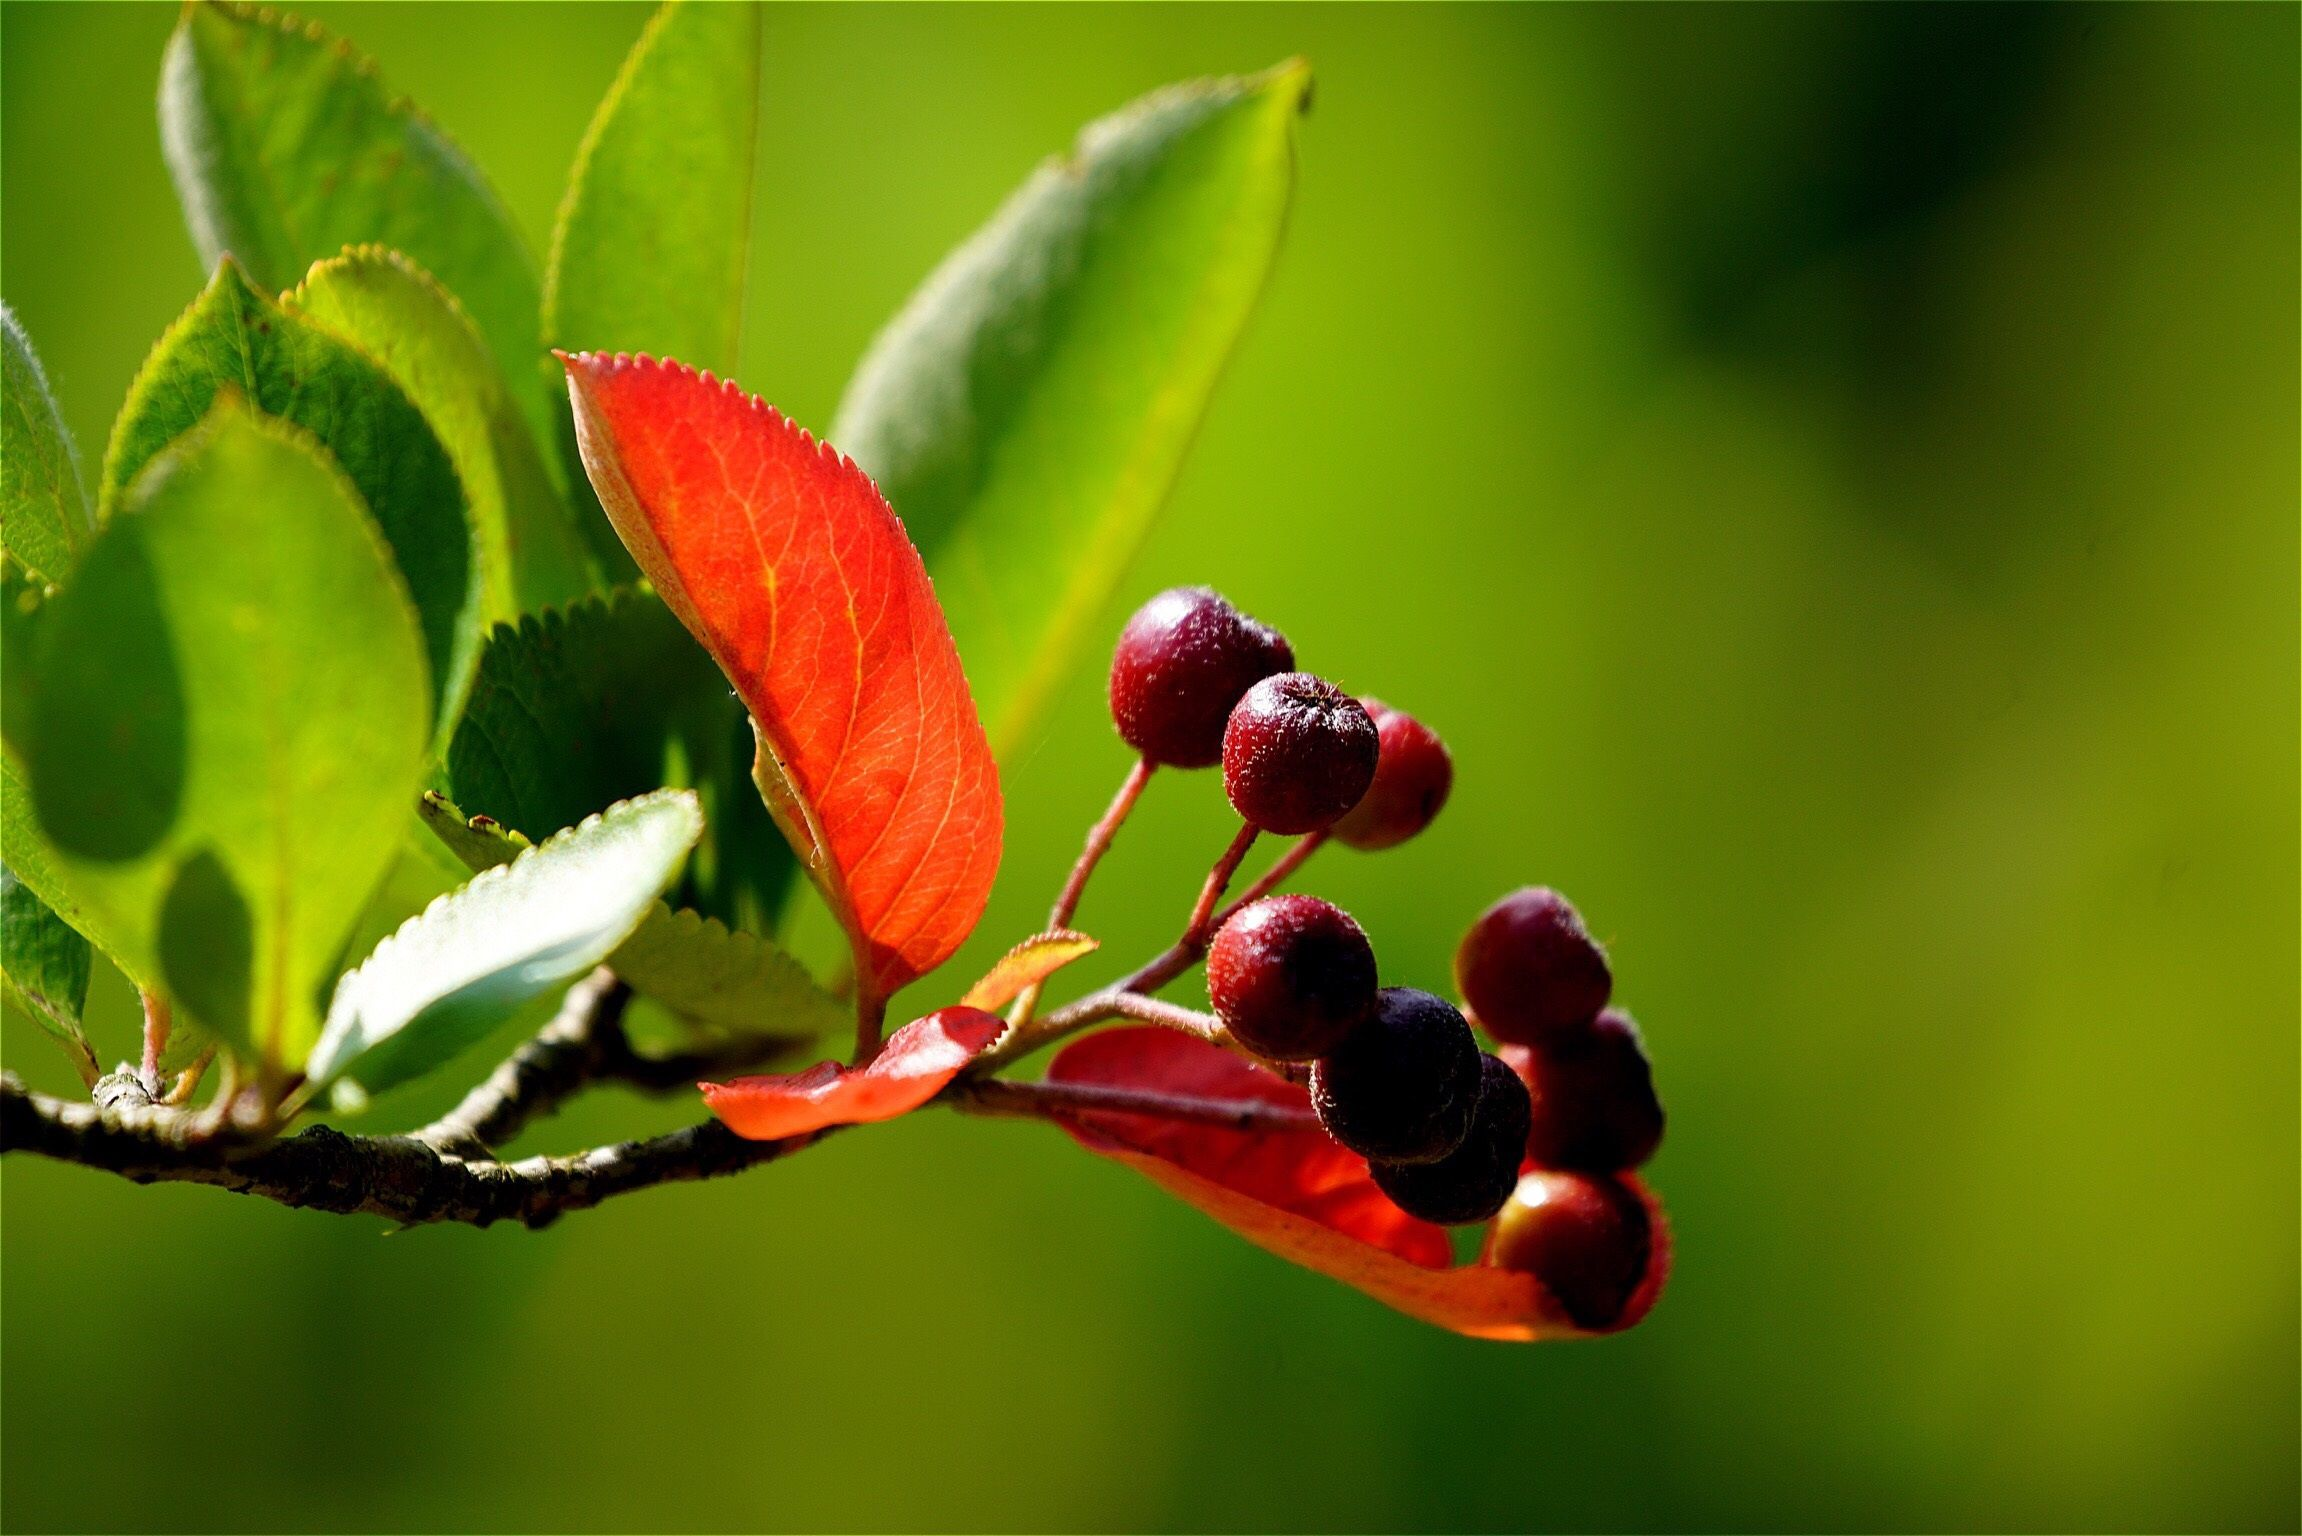 growing the red chokeberry in the home garden